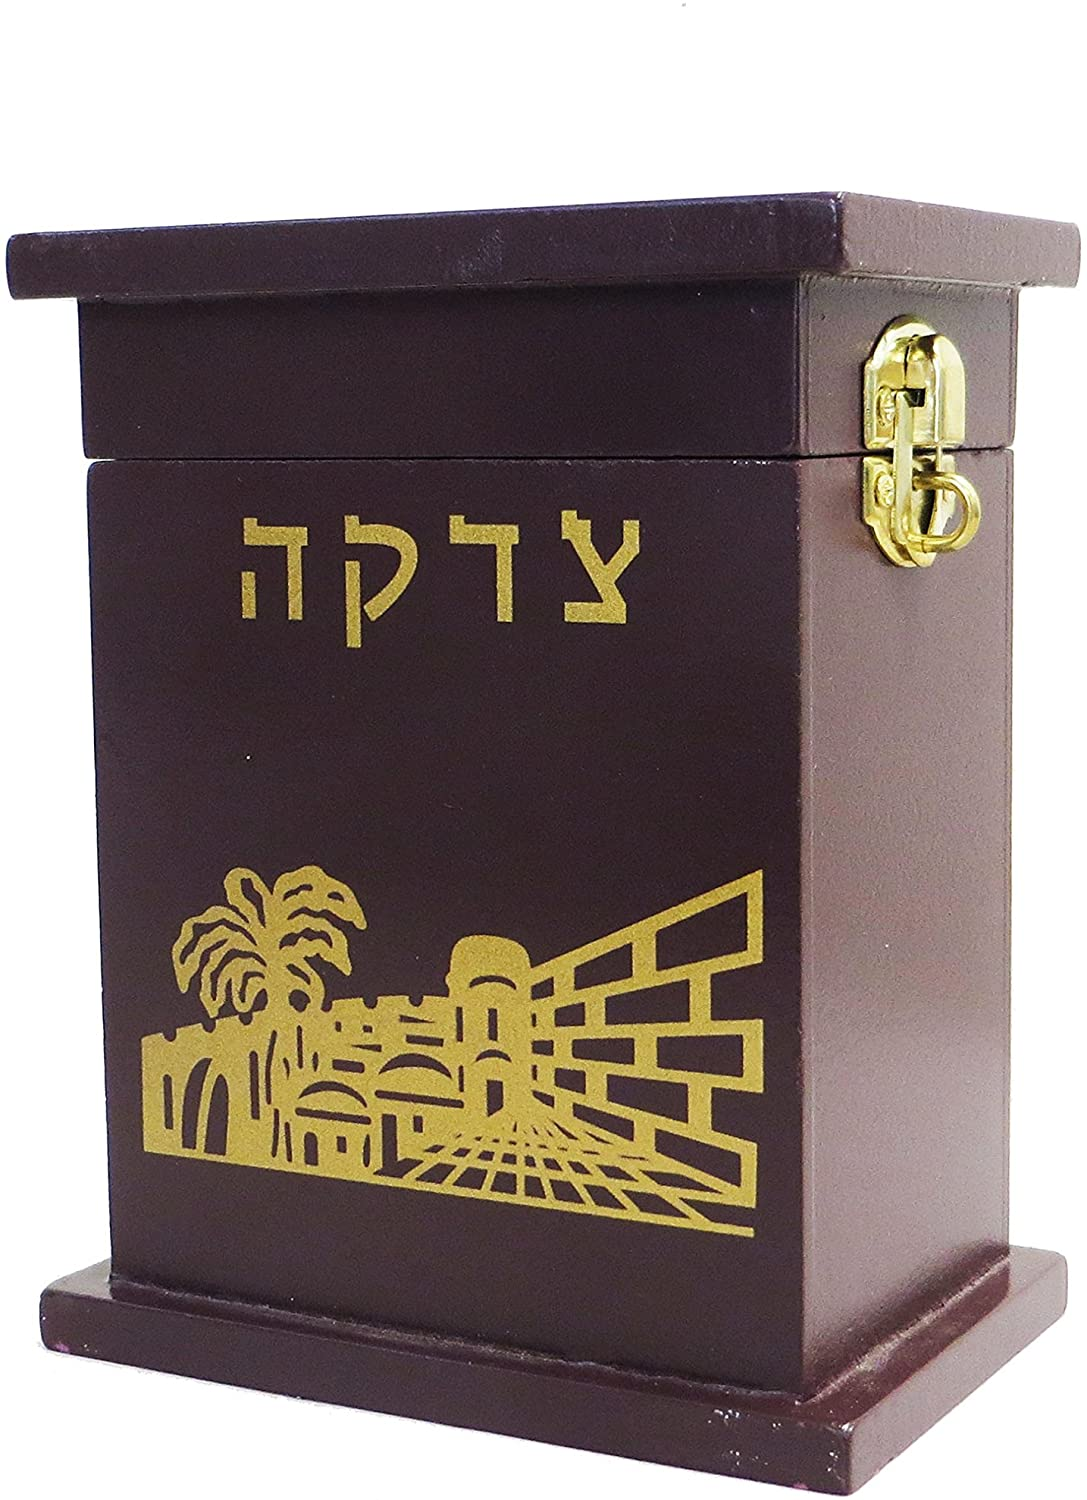 Tzedakah Box (from https://www.amazon.com/Rite-Lite-Enameled-Tzedakah-Mahogany/dp/B004R454W4)